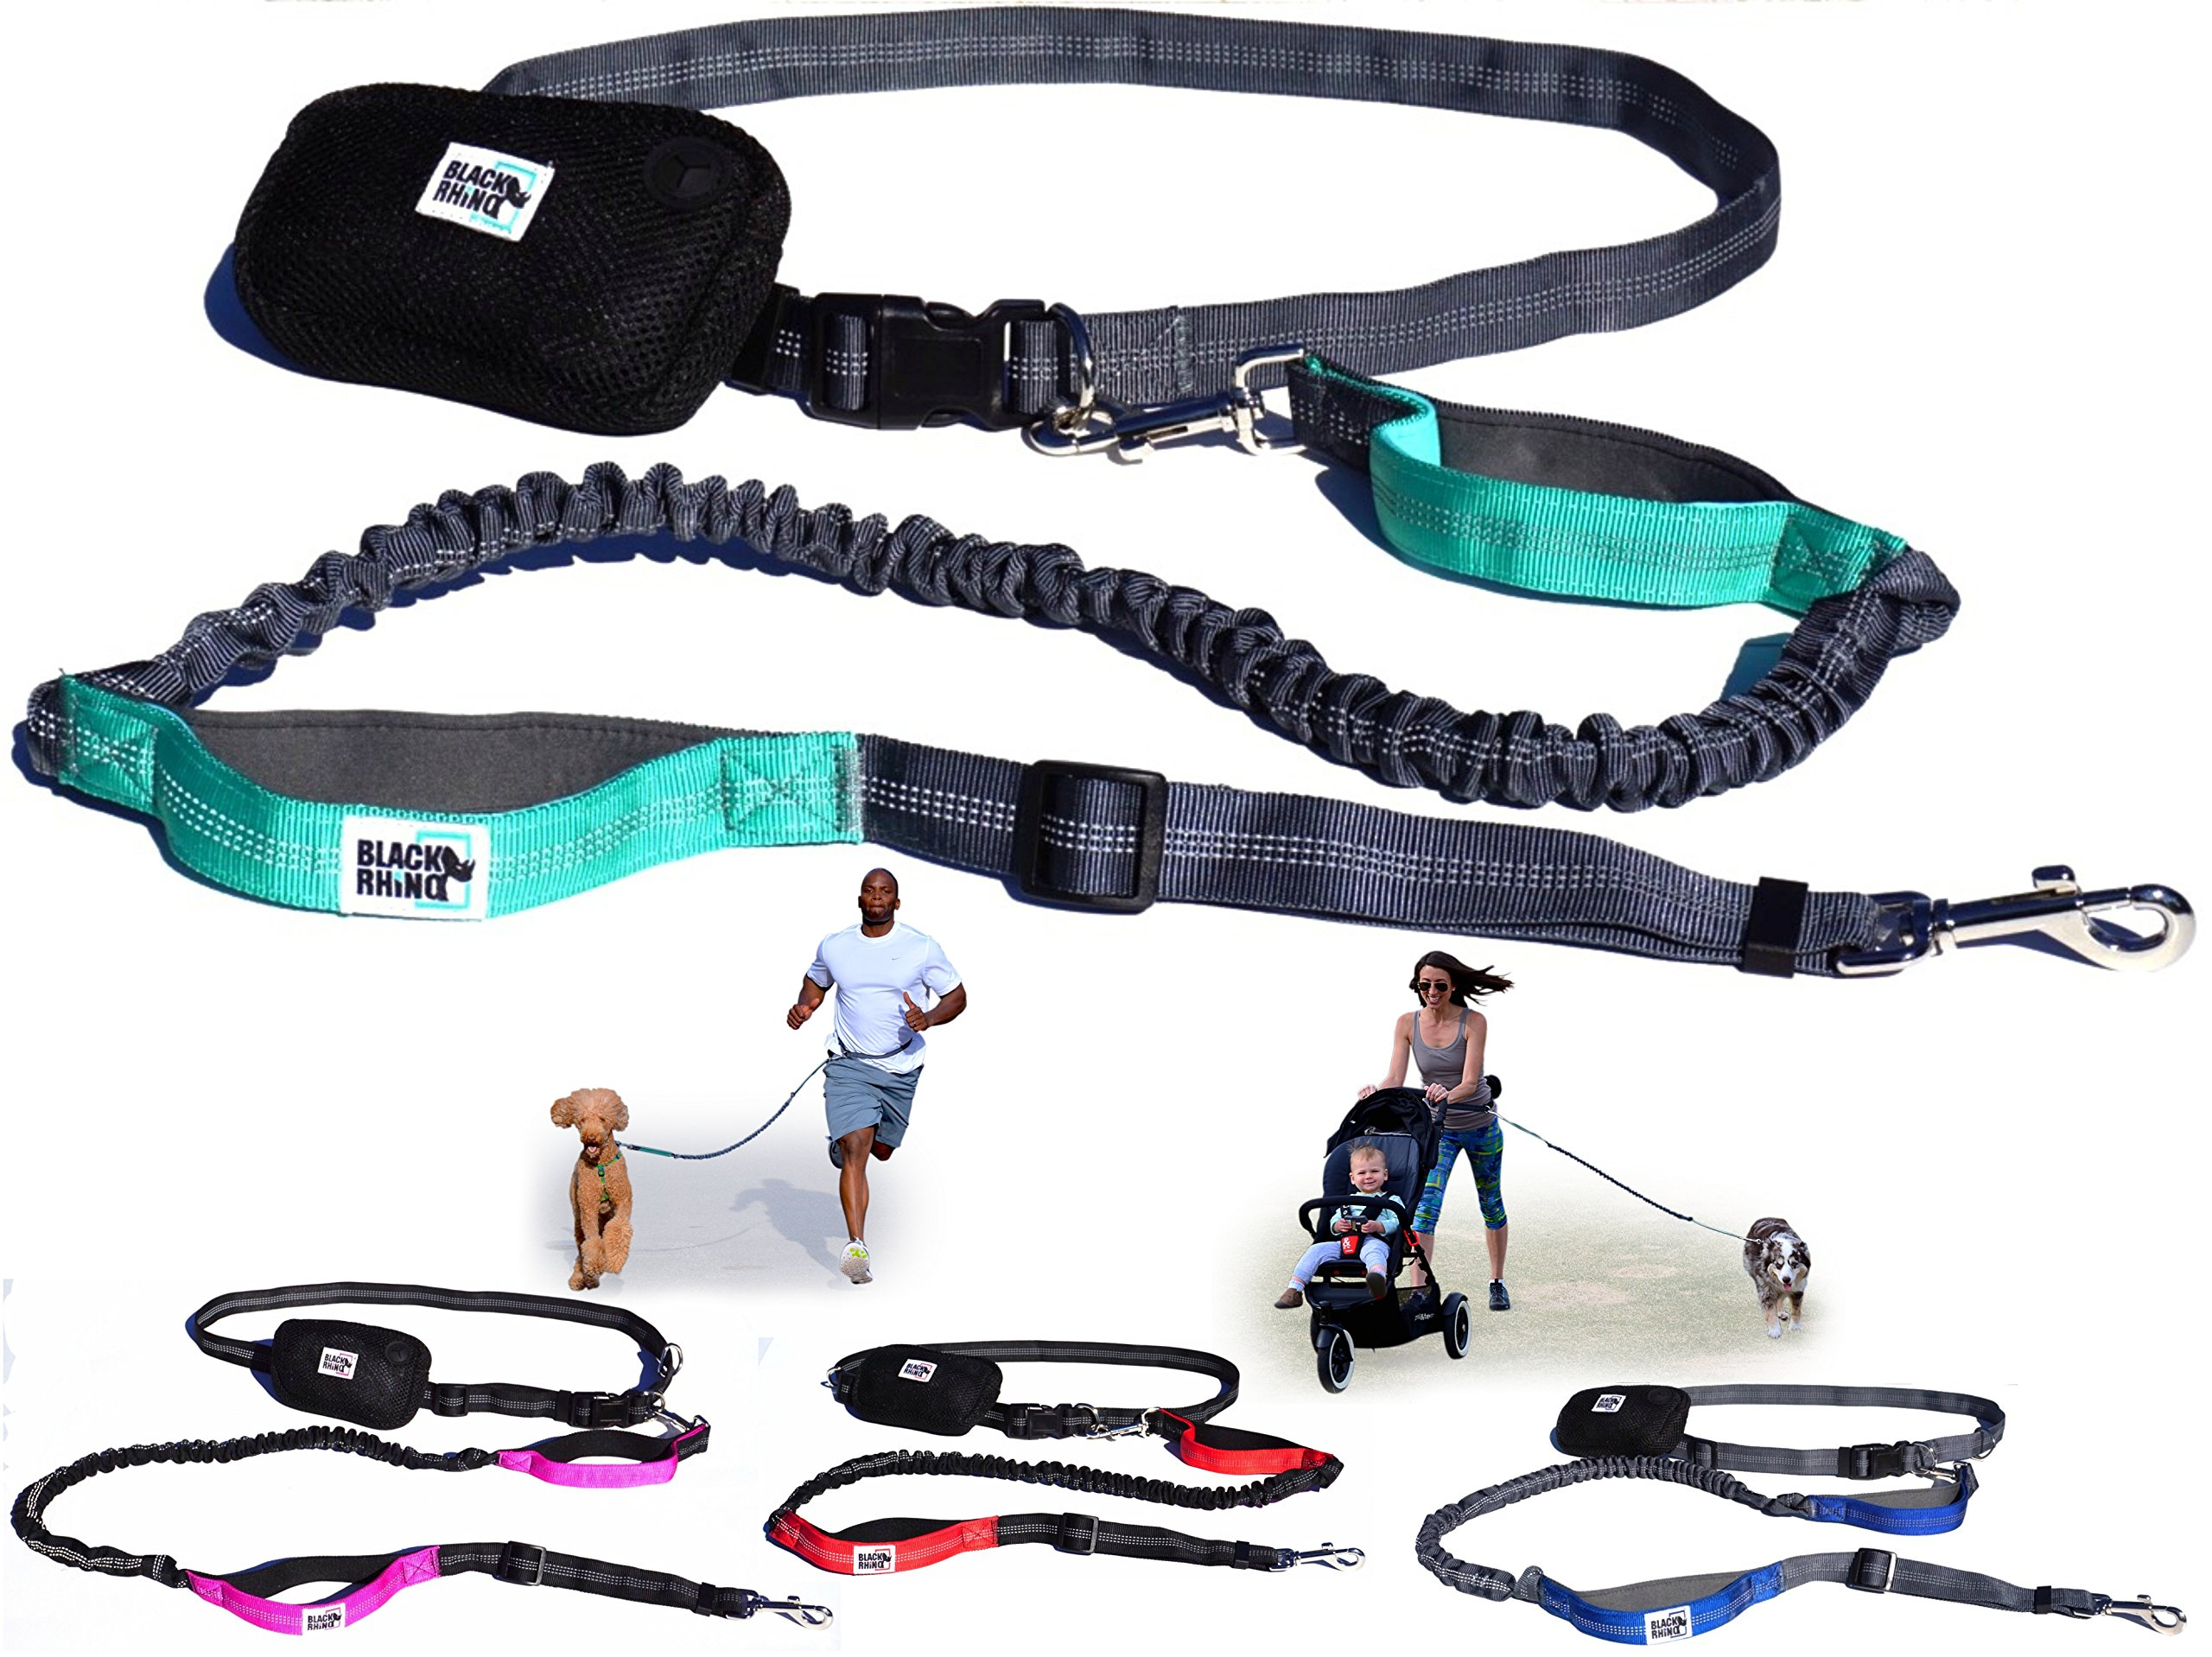 Black Rhino - Premium Hands Free Dog Leash for Running Walking Jogging & Hiking - Adjustable Length Dual Handle Bungee Leash Medium - Large Dogs Neoprene Padded Handles - Running Pouch Included Aqua by Black Rhino